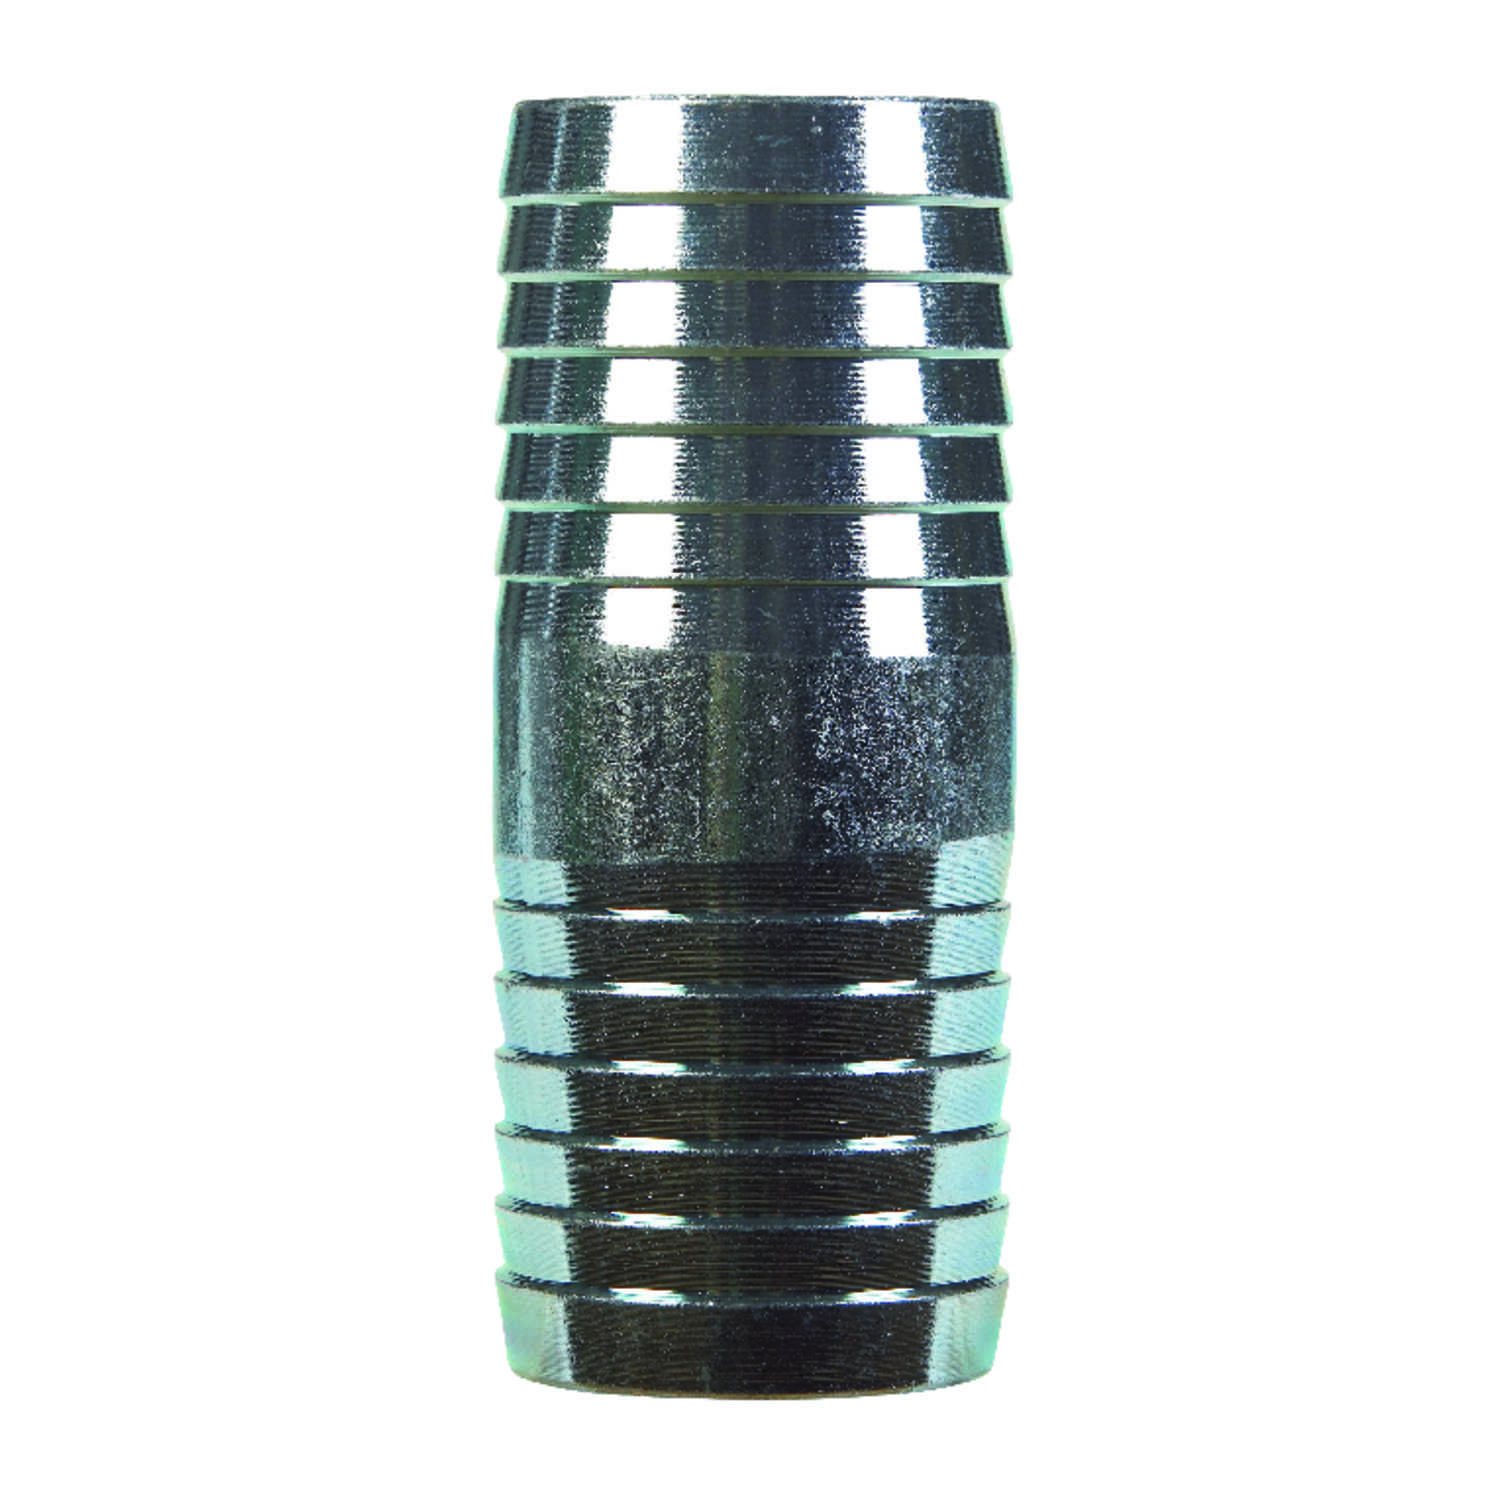 B & K  1 in. Barb   x 1 in. Dia. Barb  Galvanized Steel  Coupling